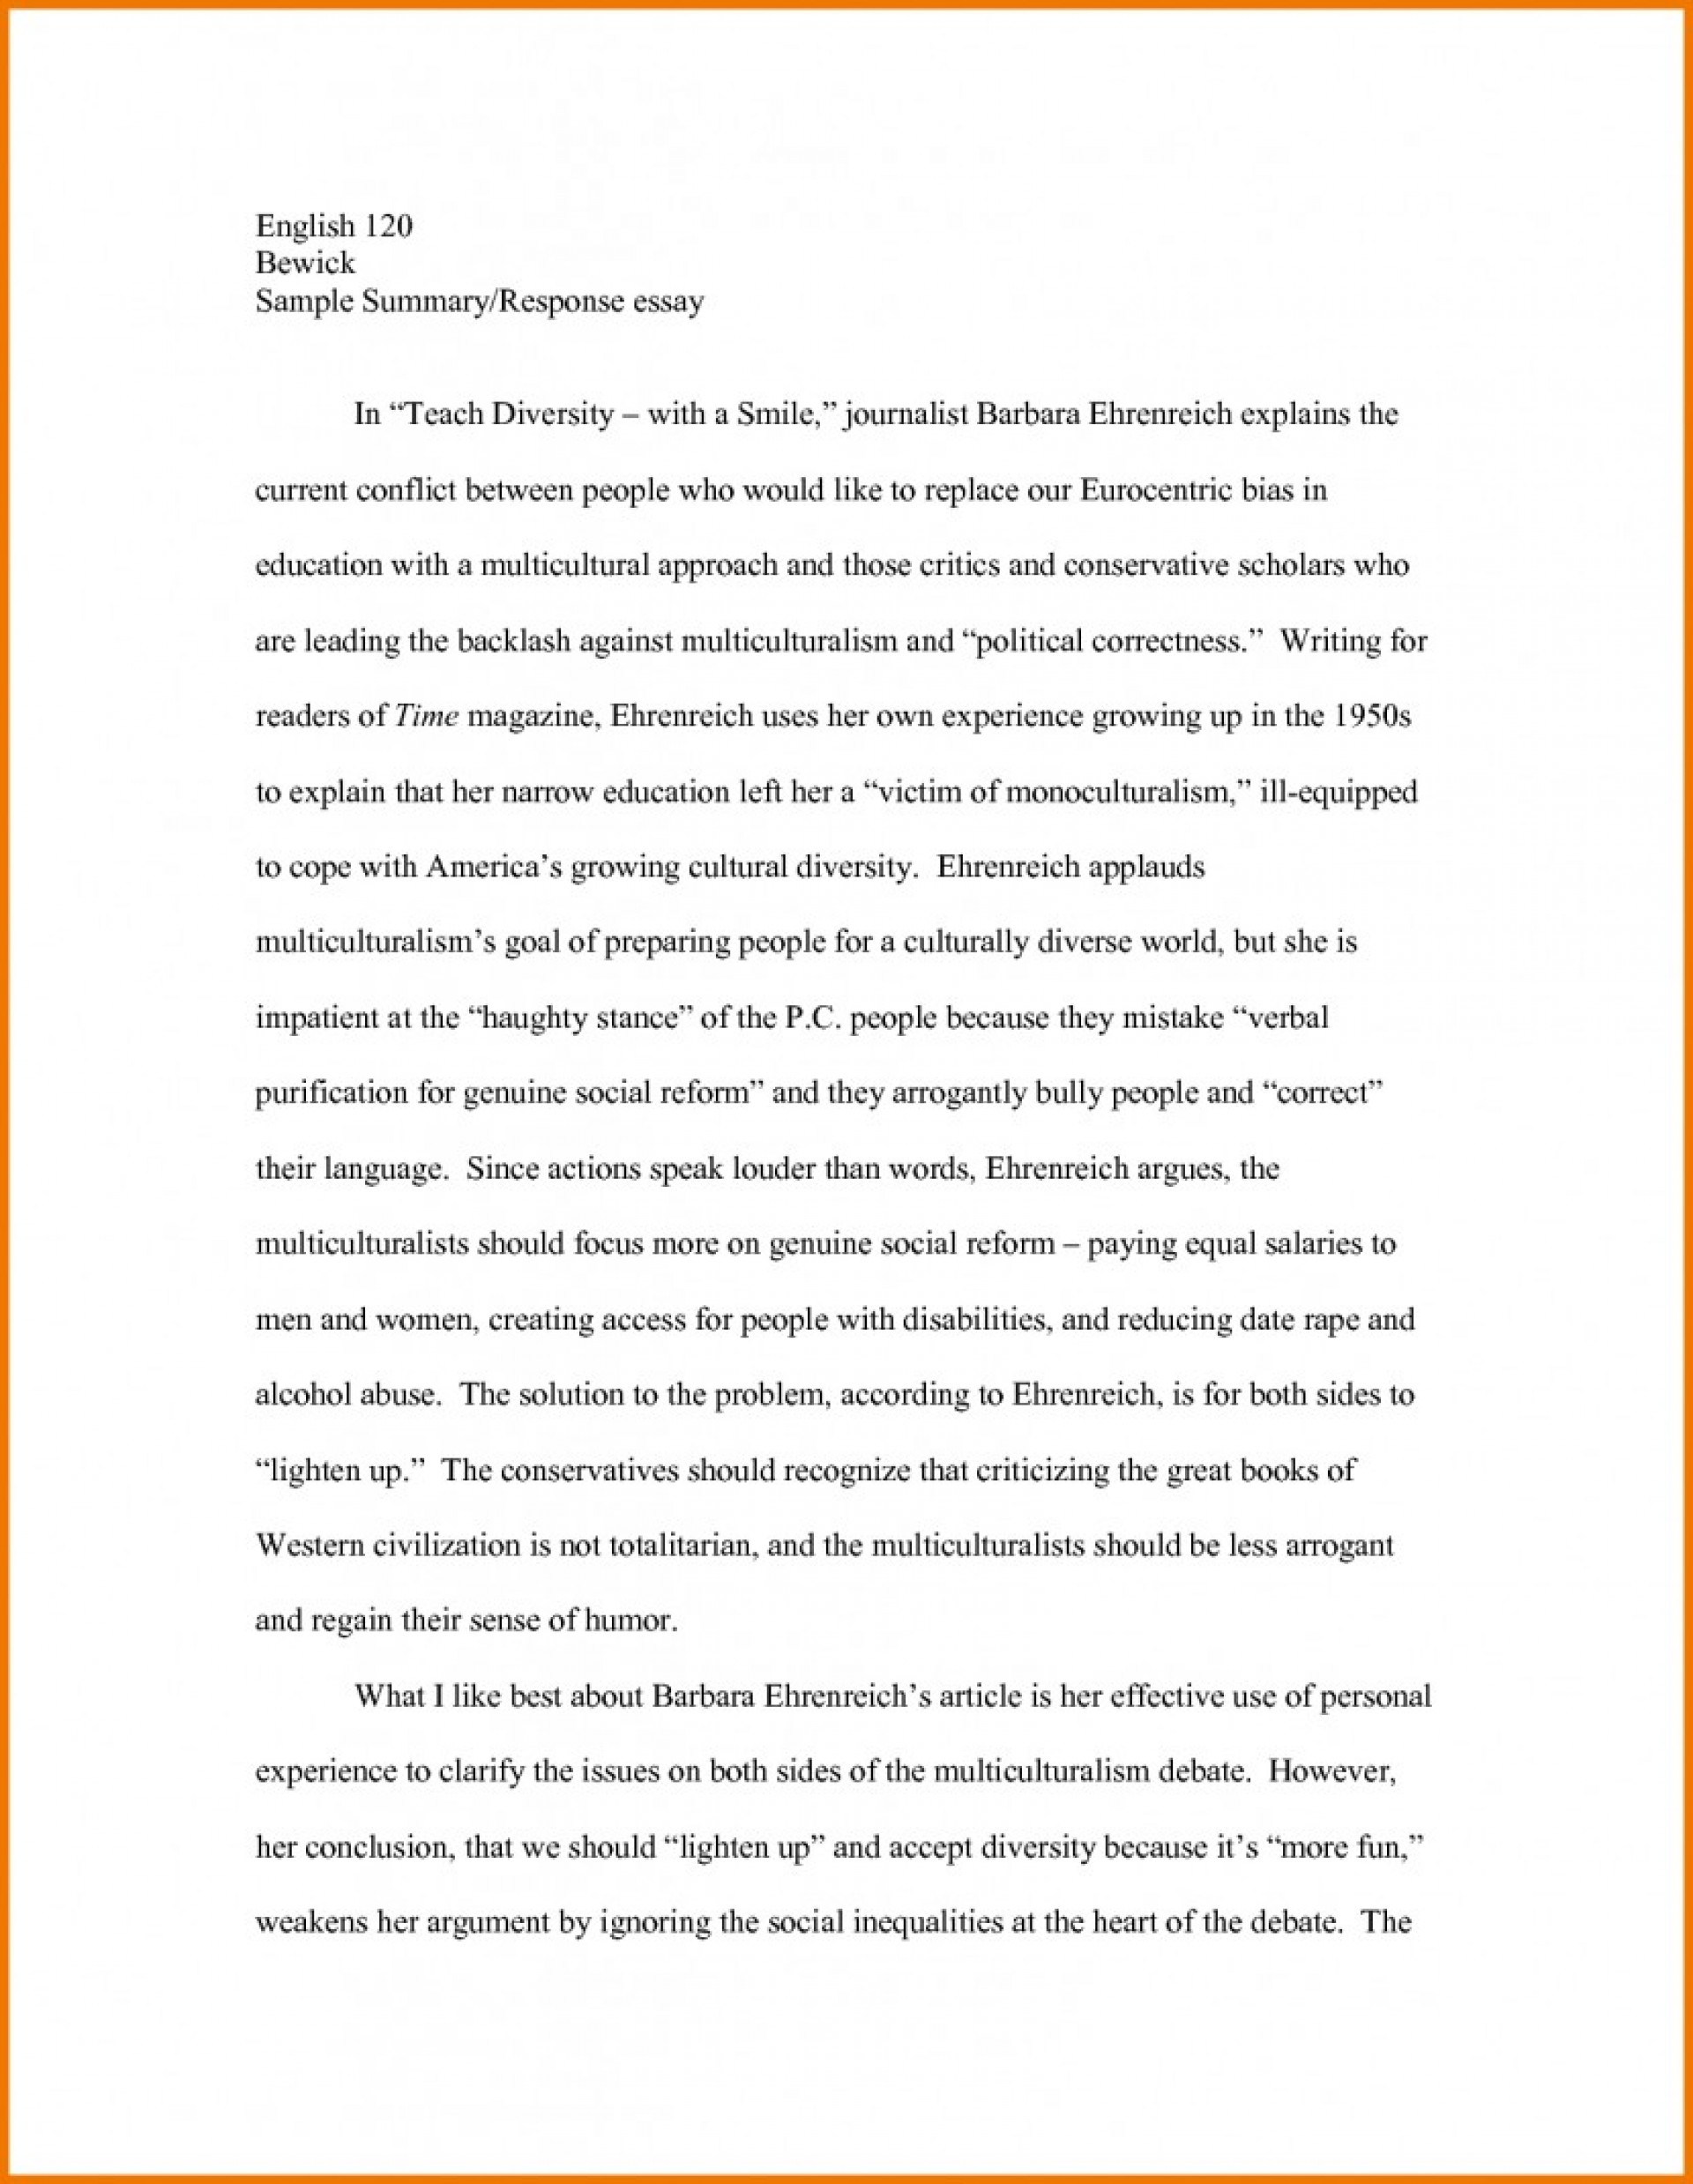 007 Example Of Summary Essays Essayrticlebout The Best Write How To Frightening A Essay Movie Review For College On An Article Introduction Paragraph 1920